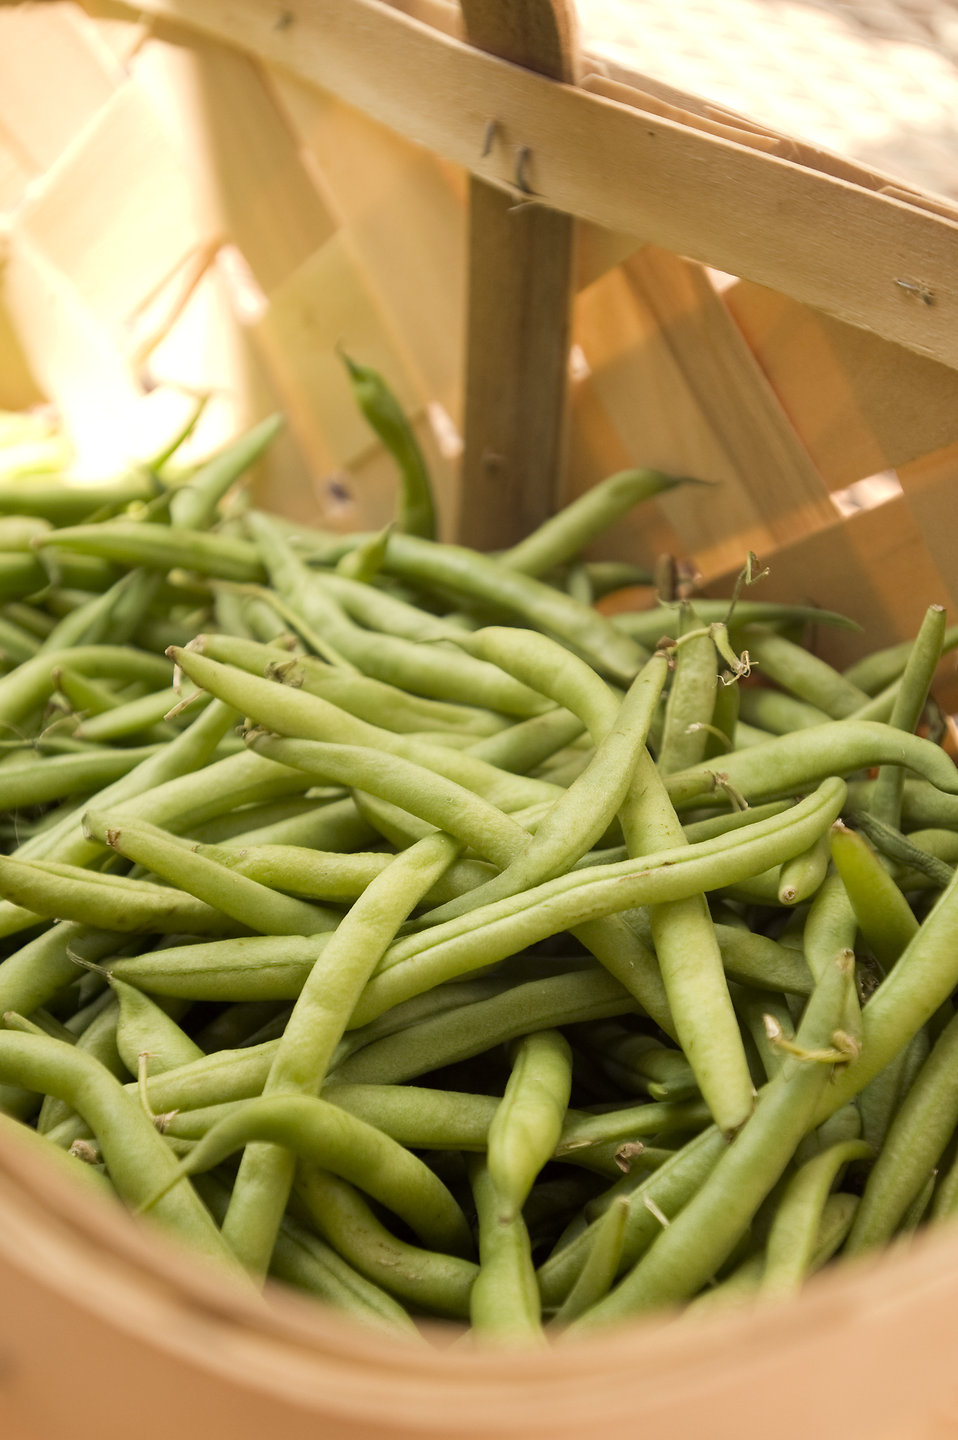 Fresh green beans in a basket : Free Stock Photo